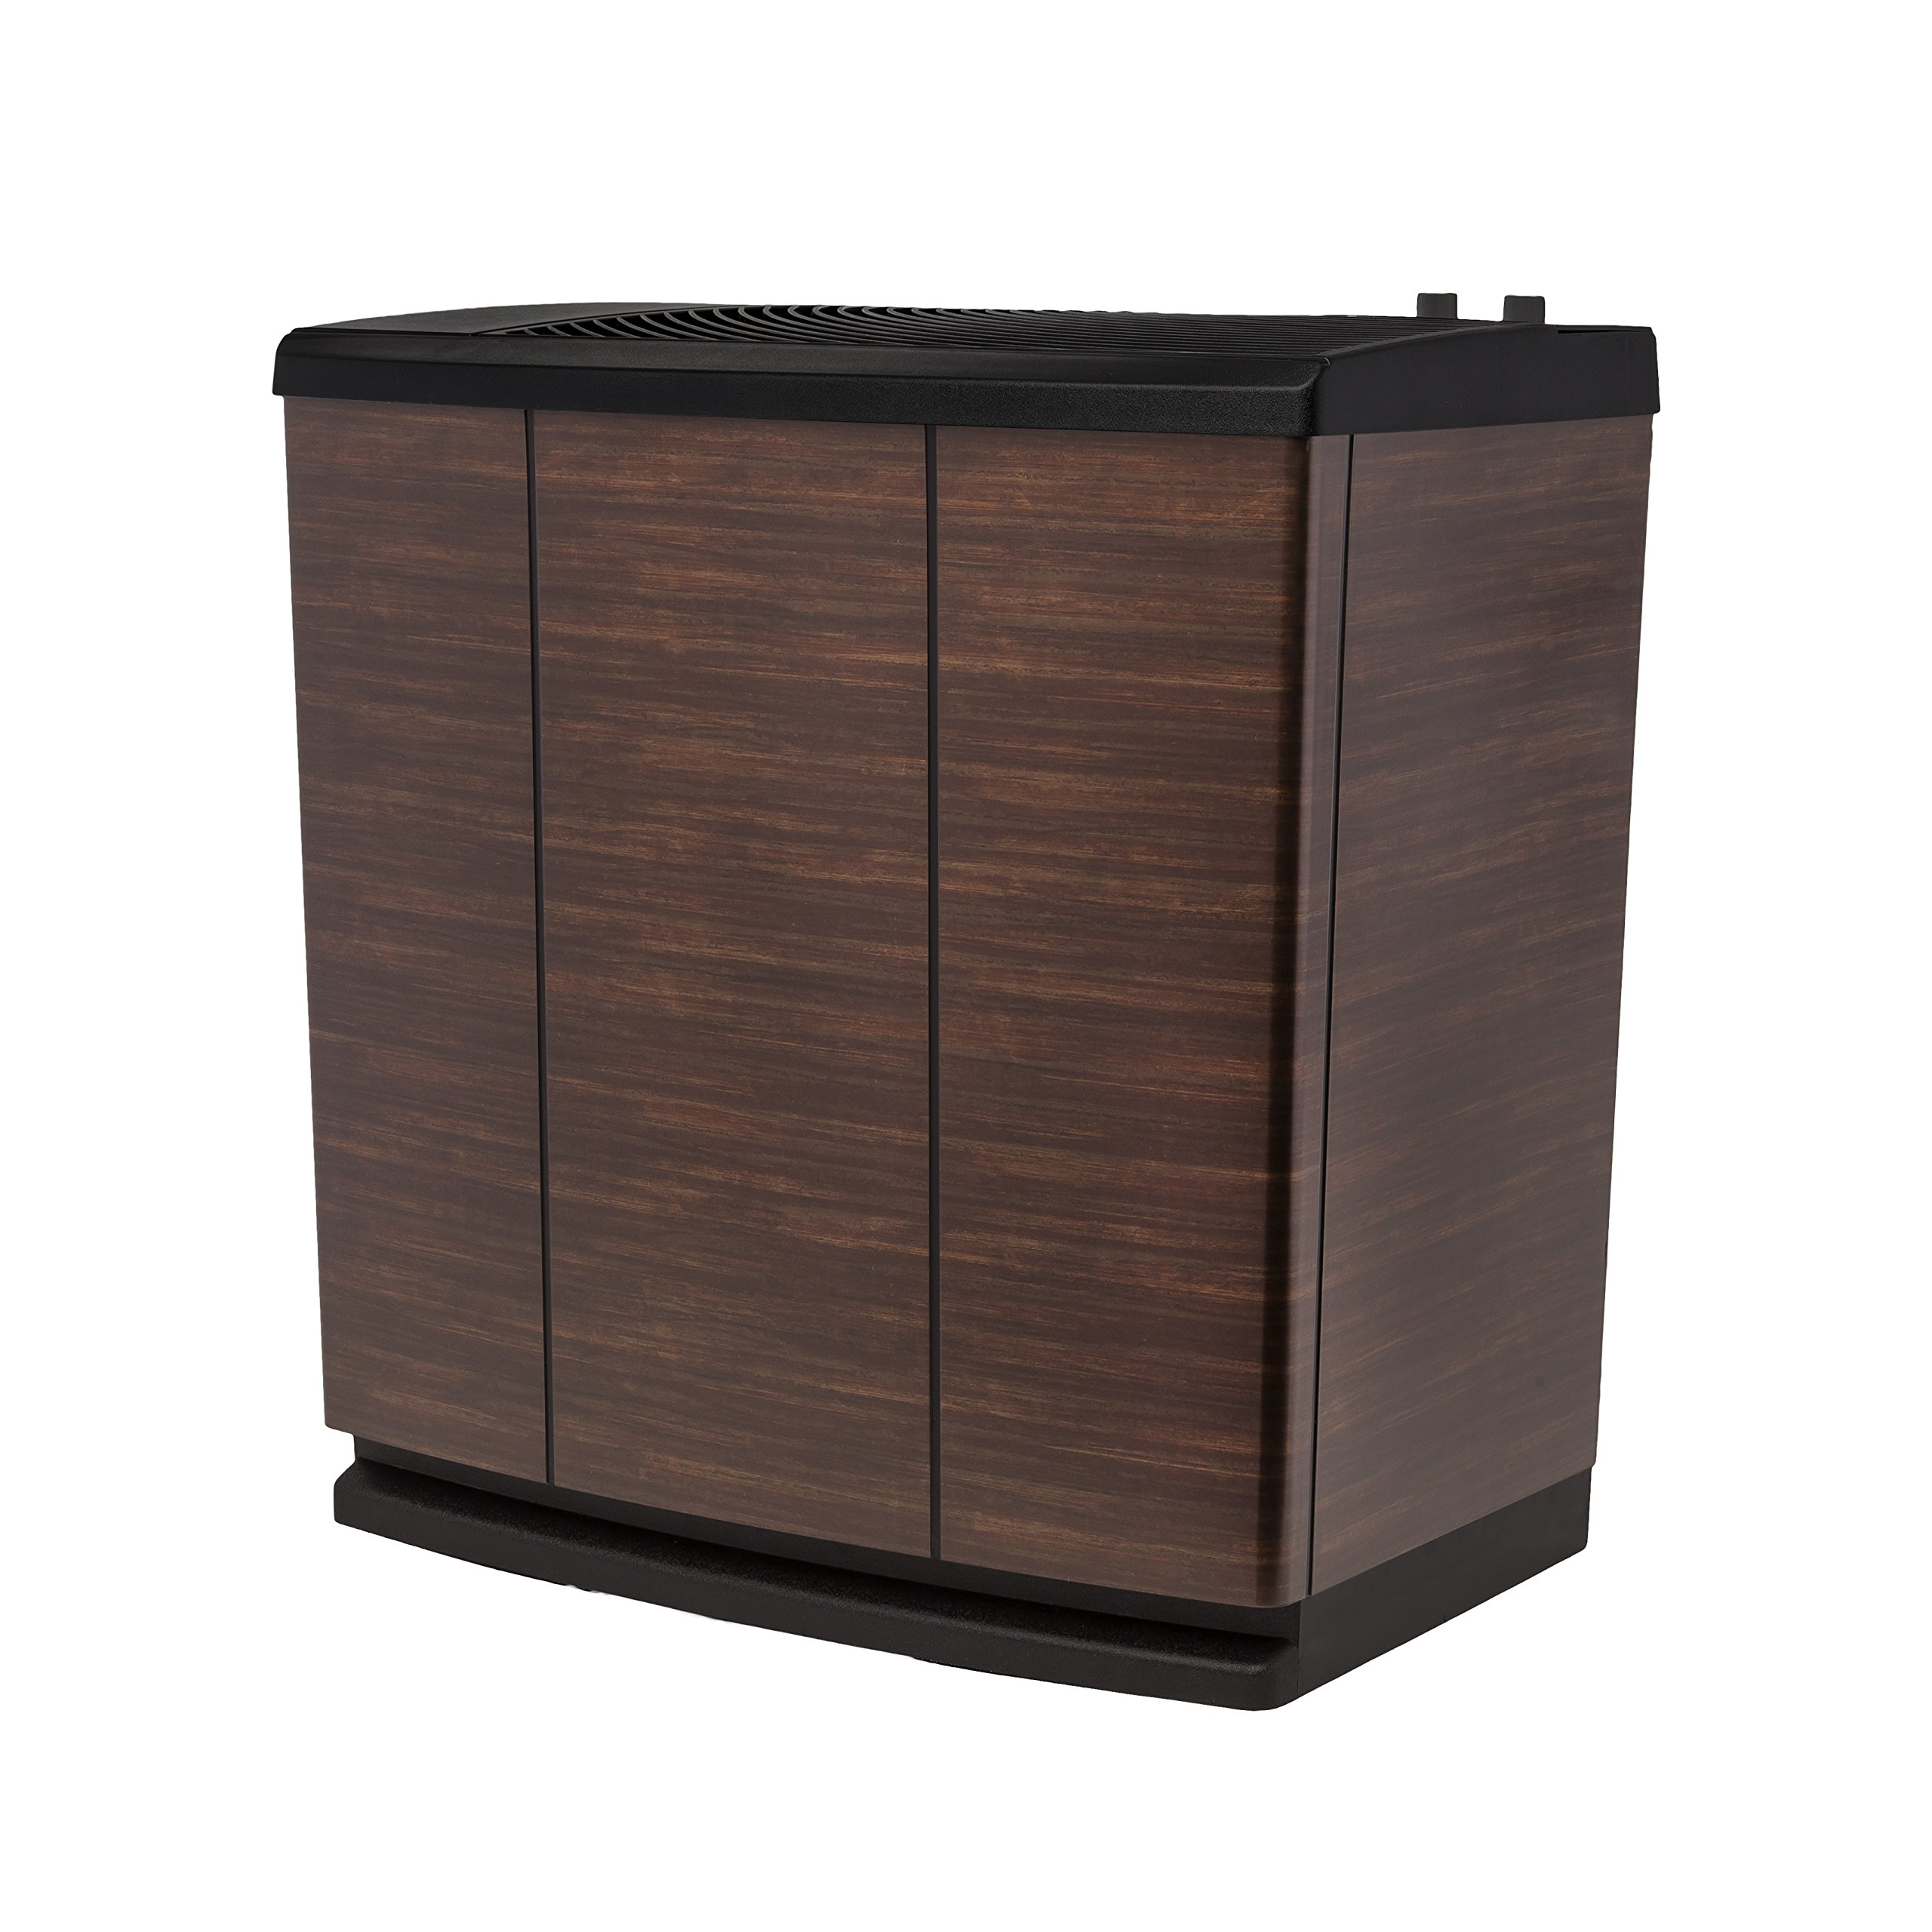 AIRCARE H12600 Digital Whole-House Console-Style Evaporative Humidifier, Copper Night by Bemis (Image #3)